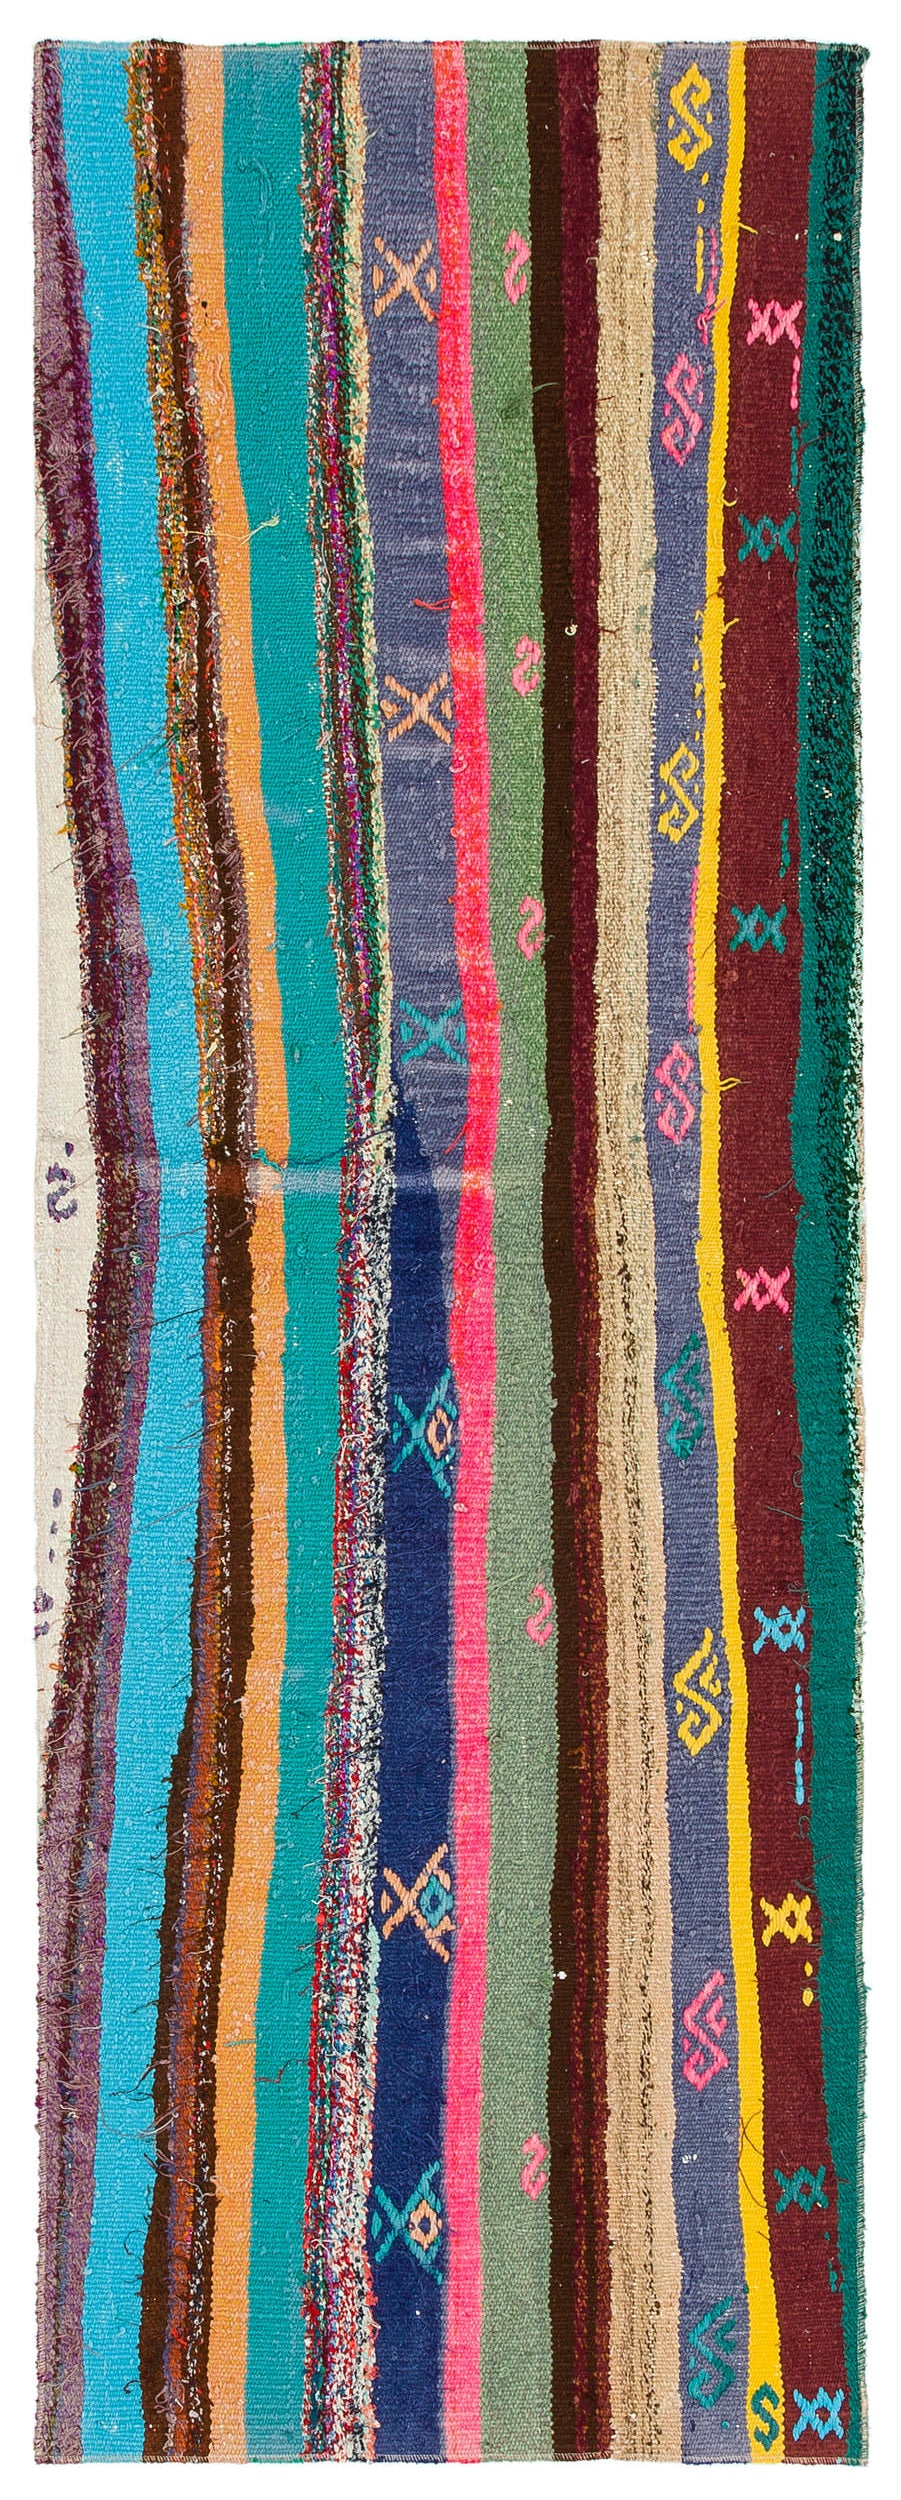 Chaput Over Dyed Kilim Rug 1'12'' x 5'10'' ft 60 x 178 cm